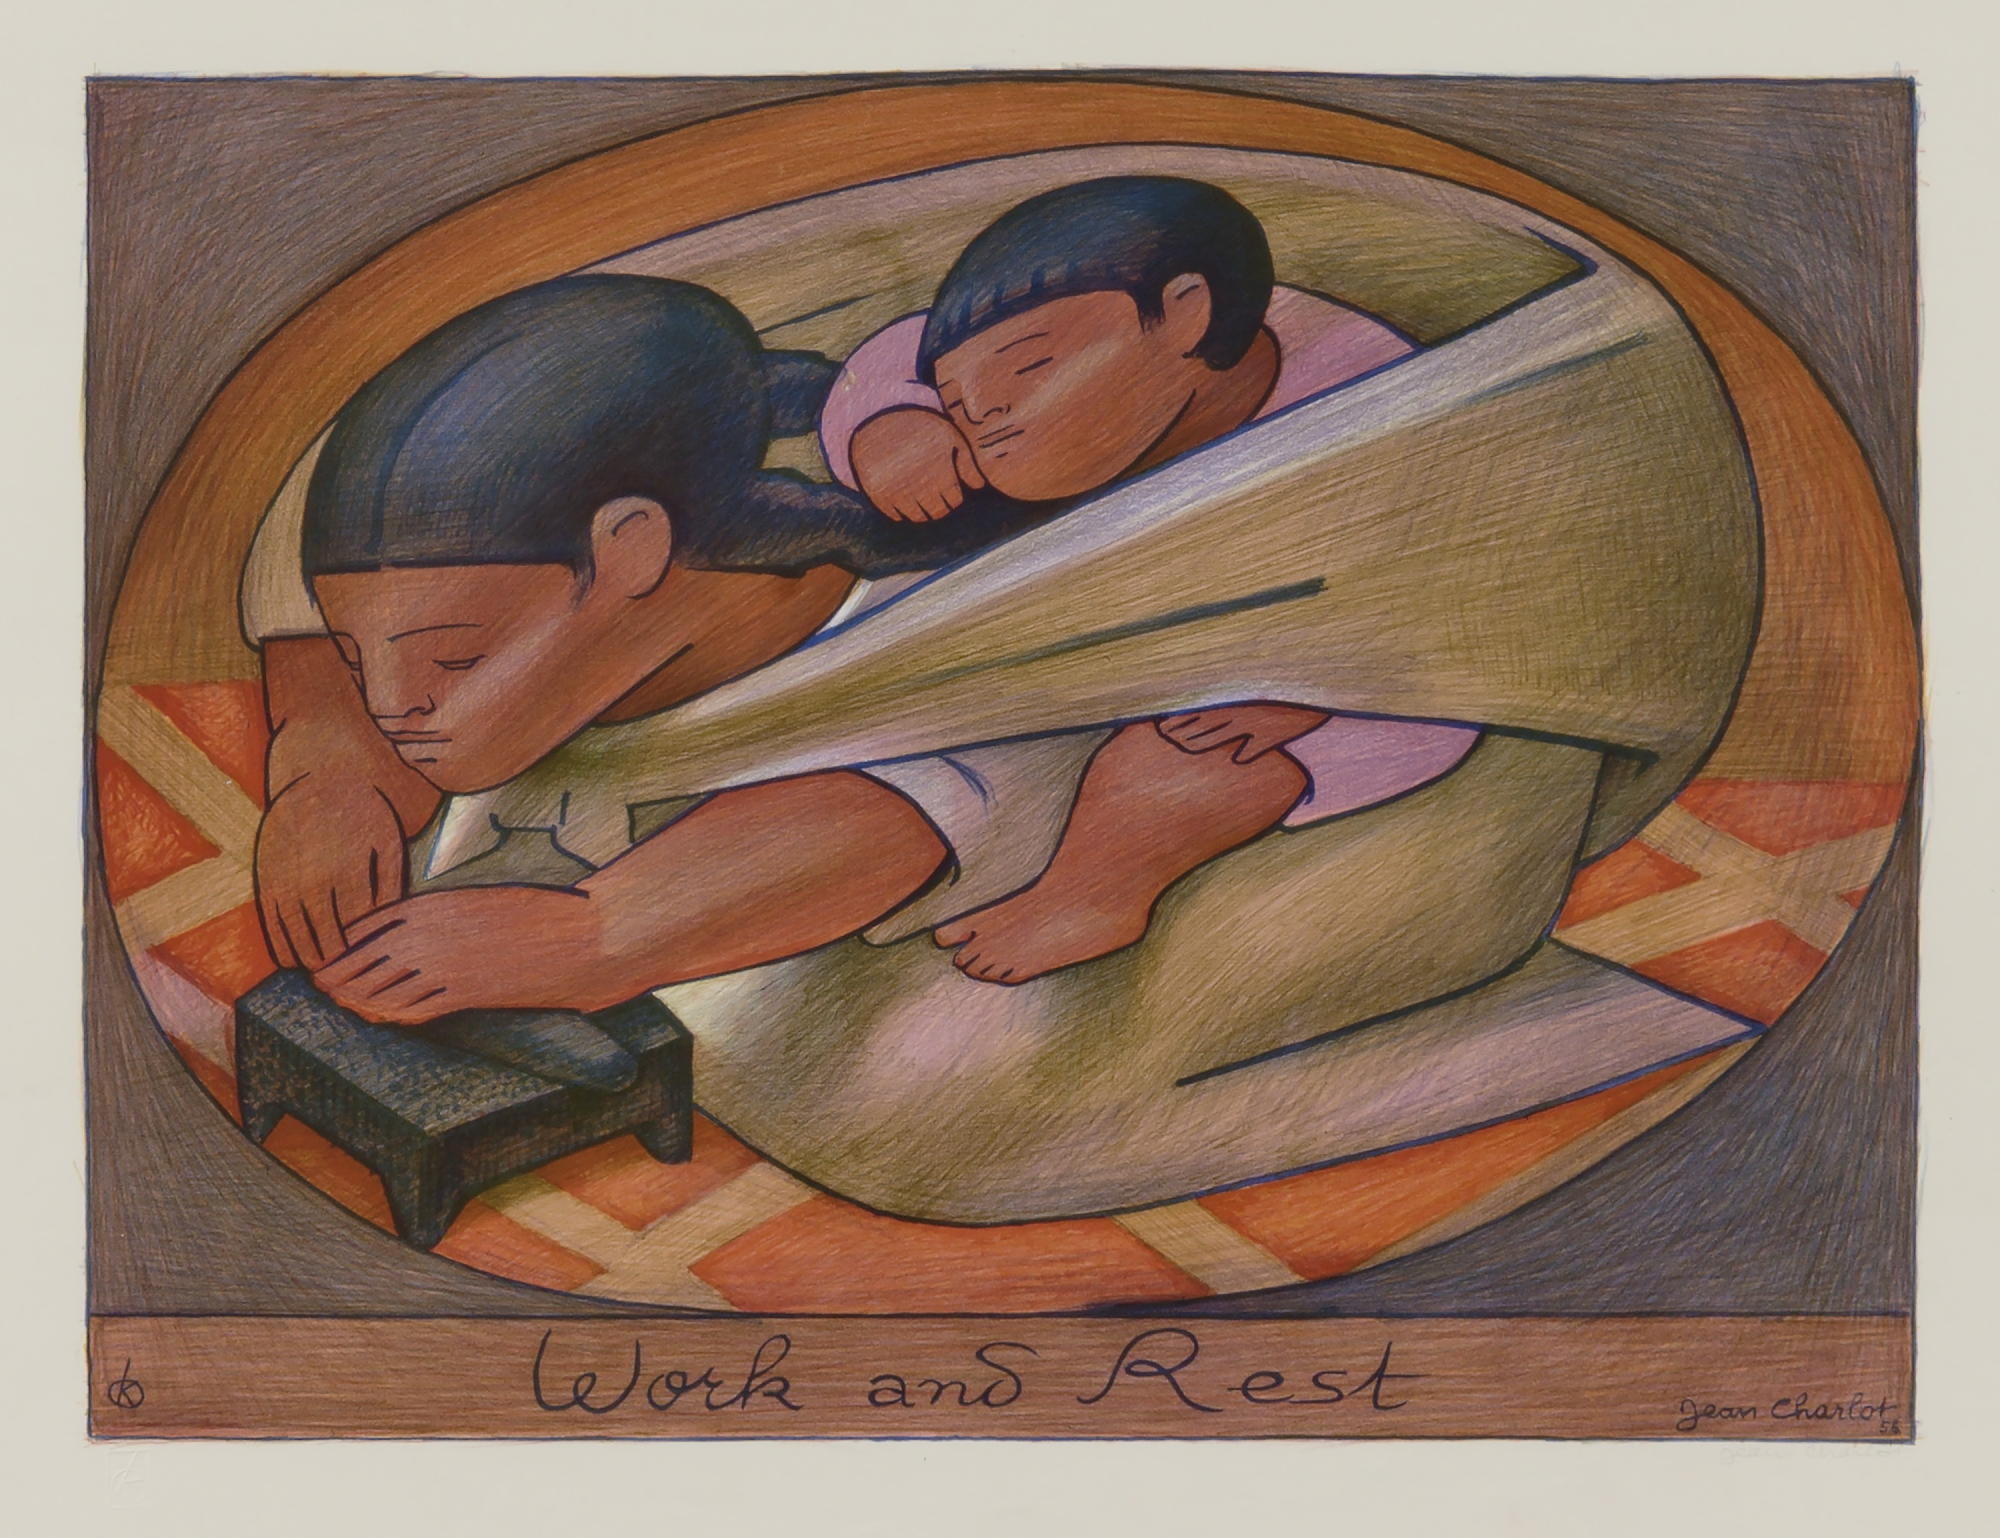 """Jean Charlot, """"Work and Rest"""", 1956, color lithograph, Smithsonian American Art Museum"""